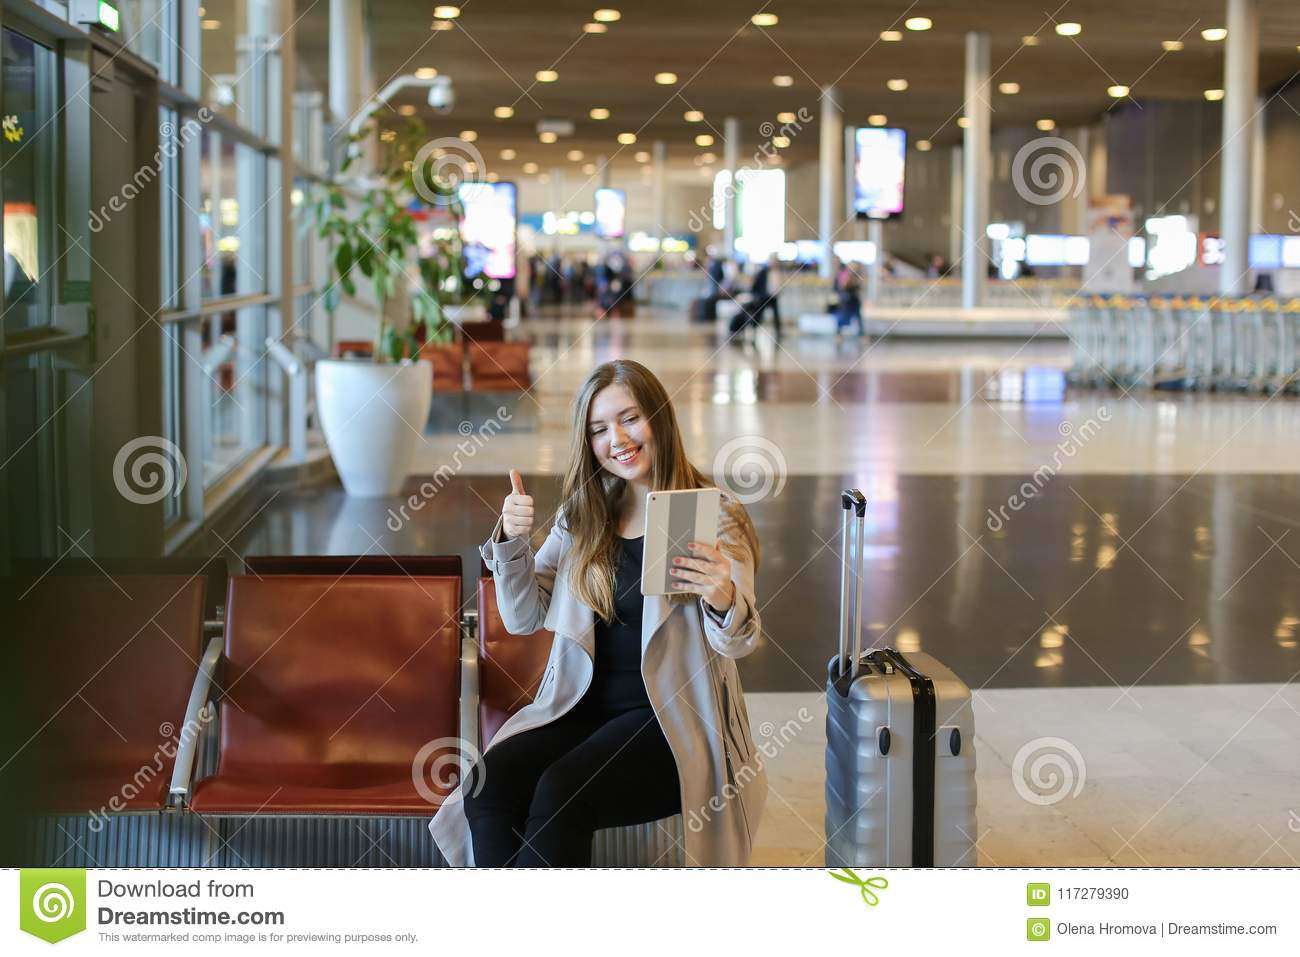 Girl Making Video Call By Tablet In Airport Hall And Sitting Near